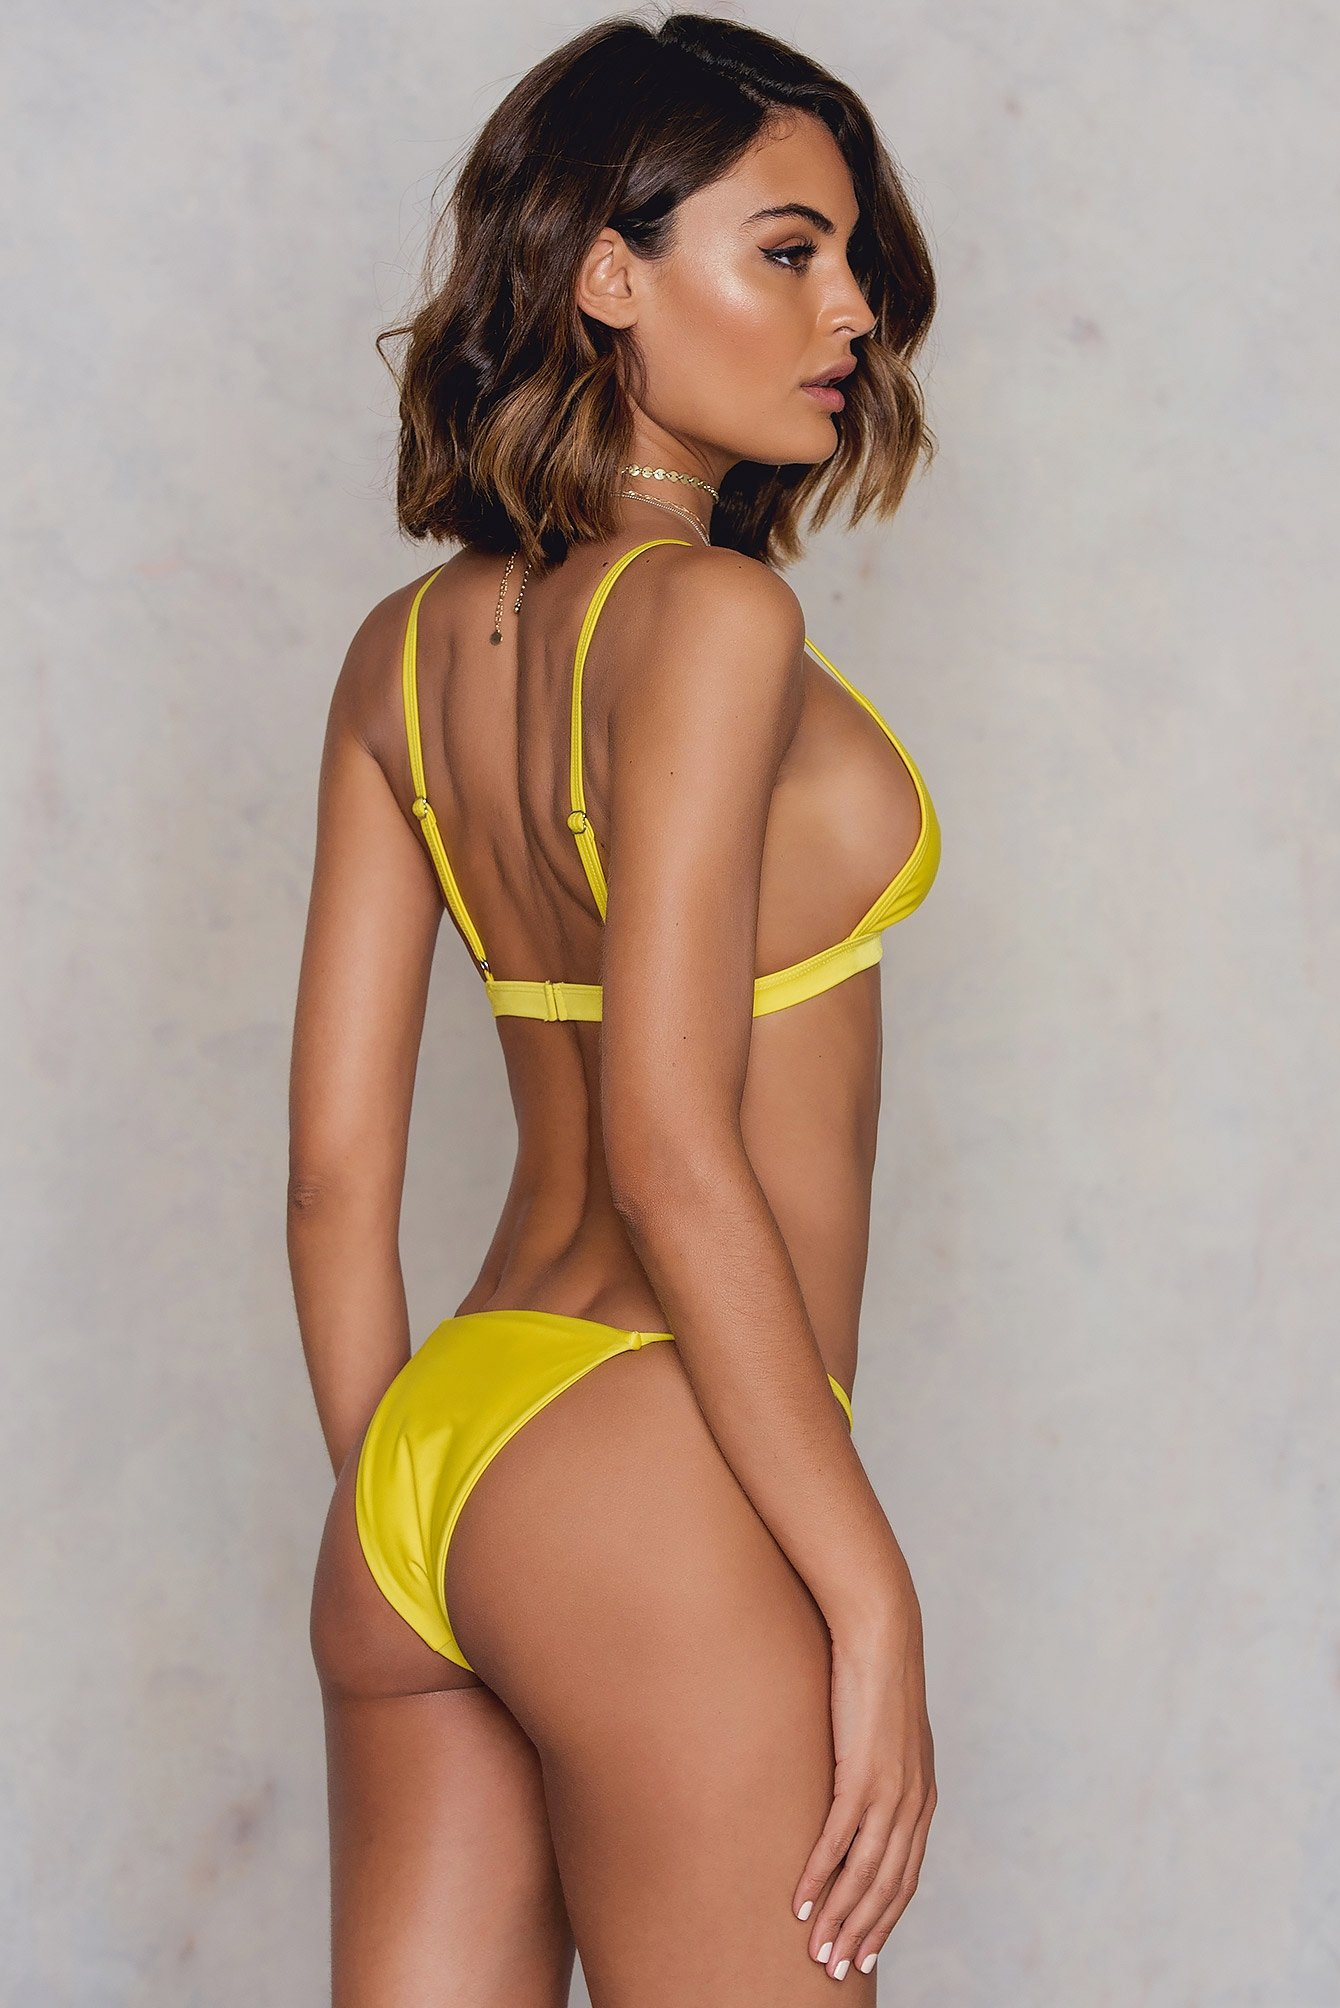 Brazillian Bikini Model